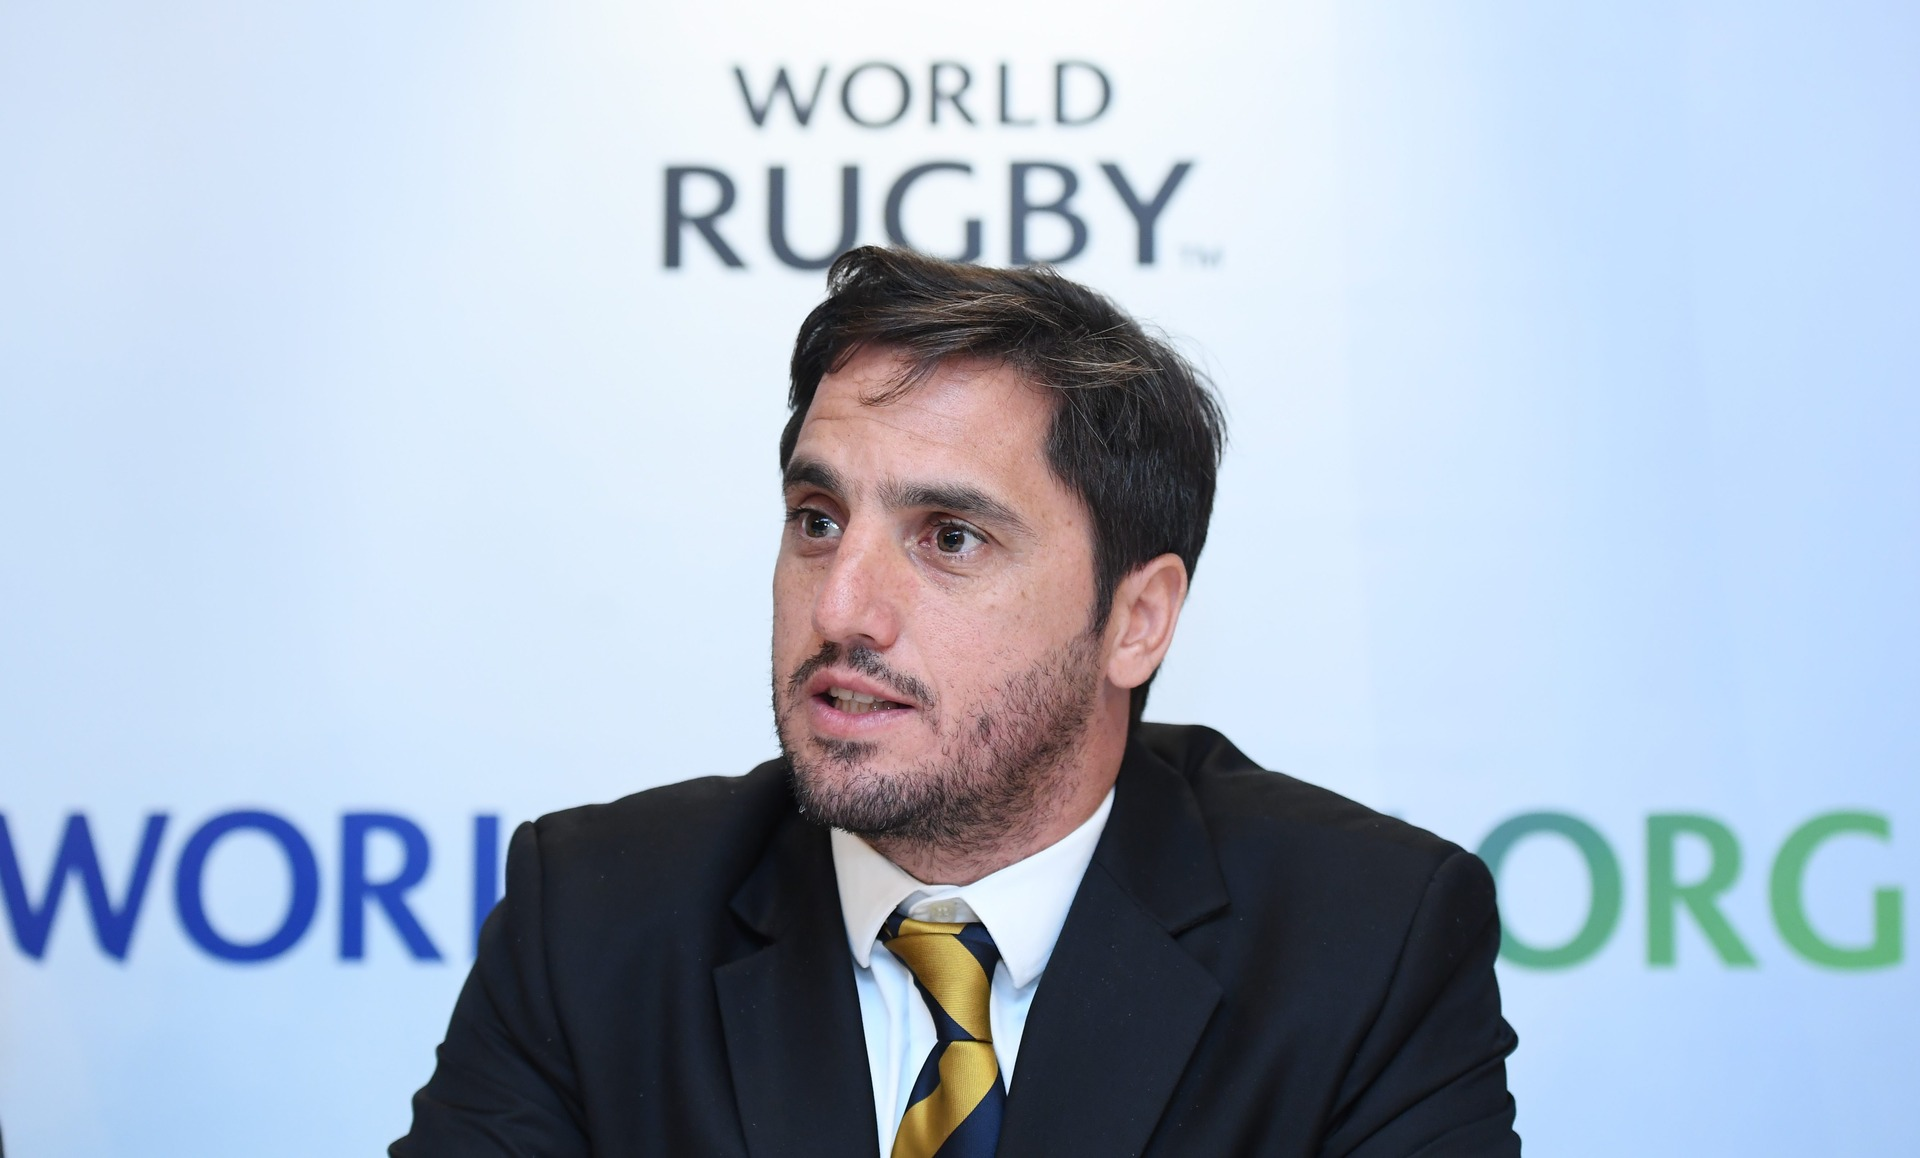 Rugby: World Rugby vice-chairman Agustin Pichot not confident ...